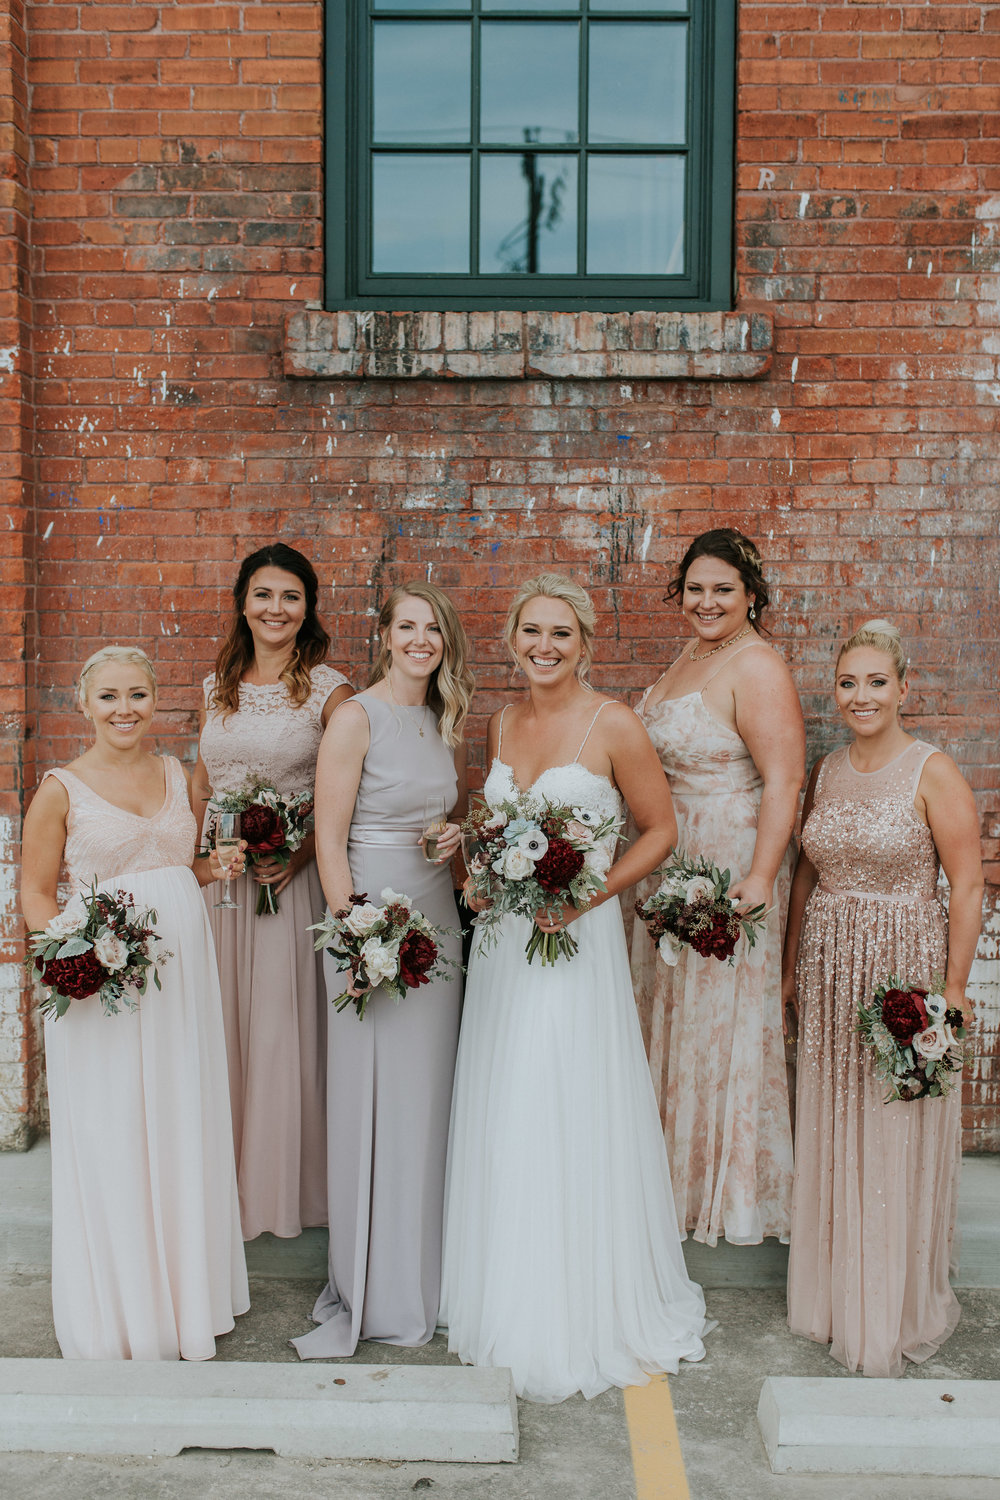 MaddyJarretWedding2017 (29 of 46).jpg